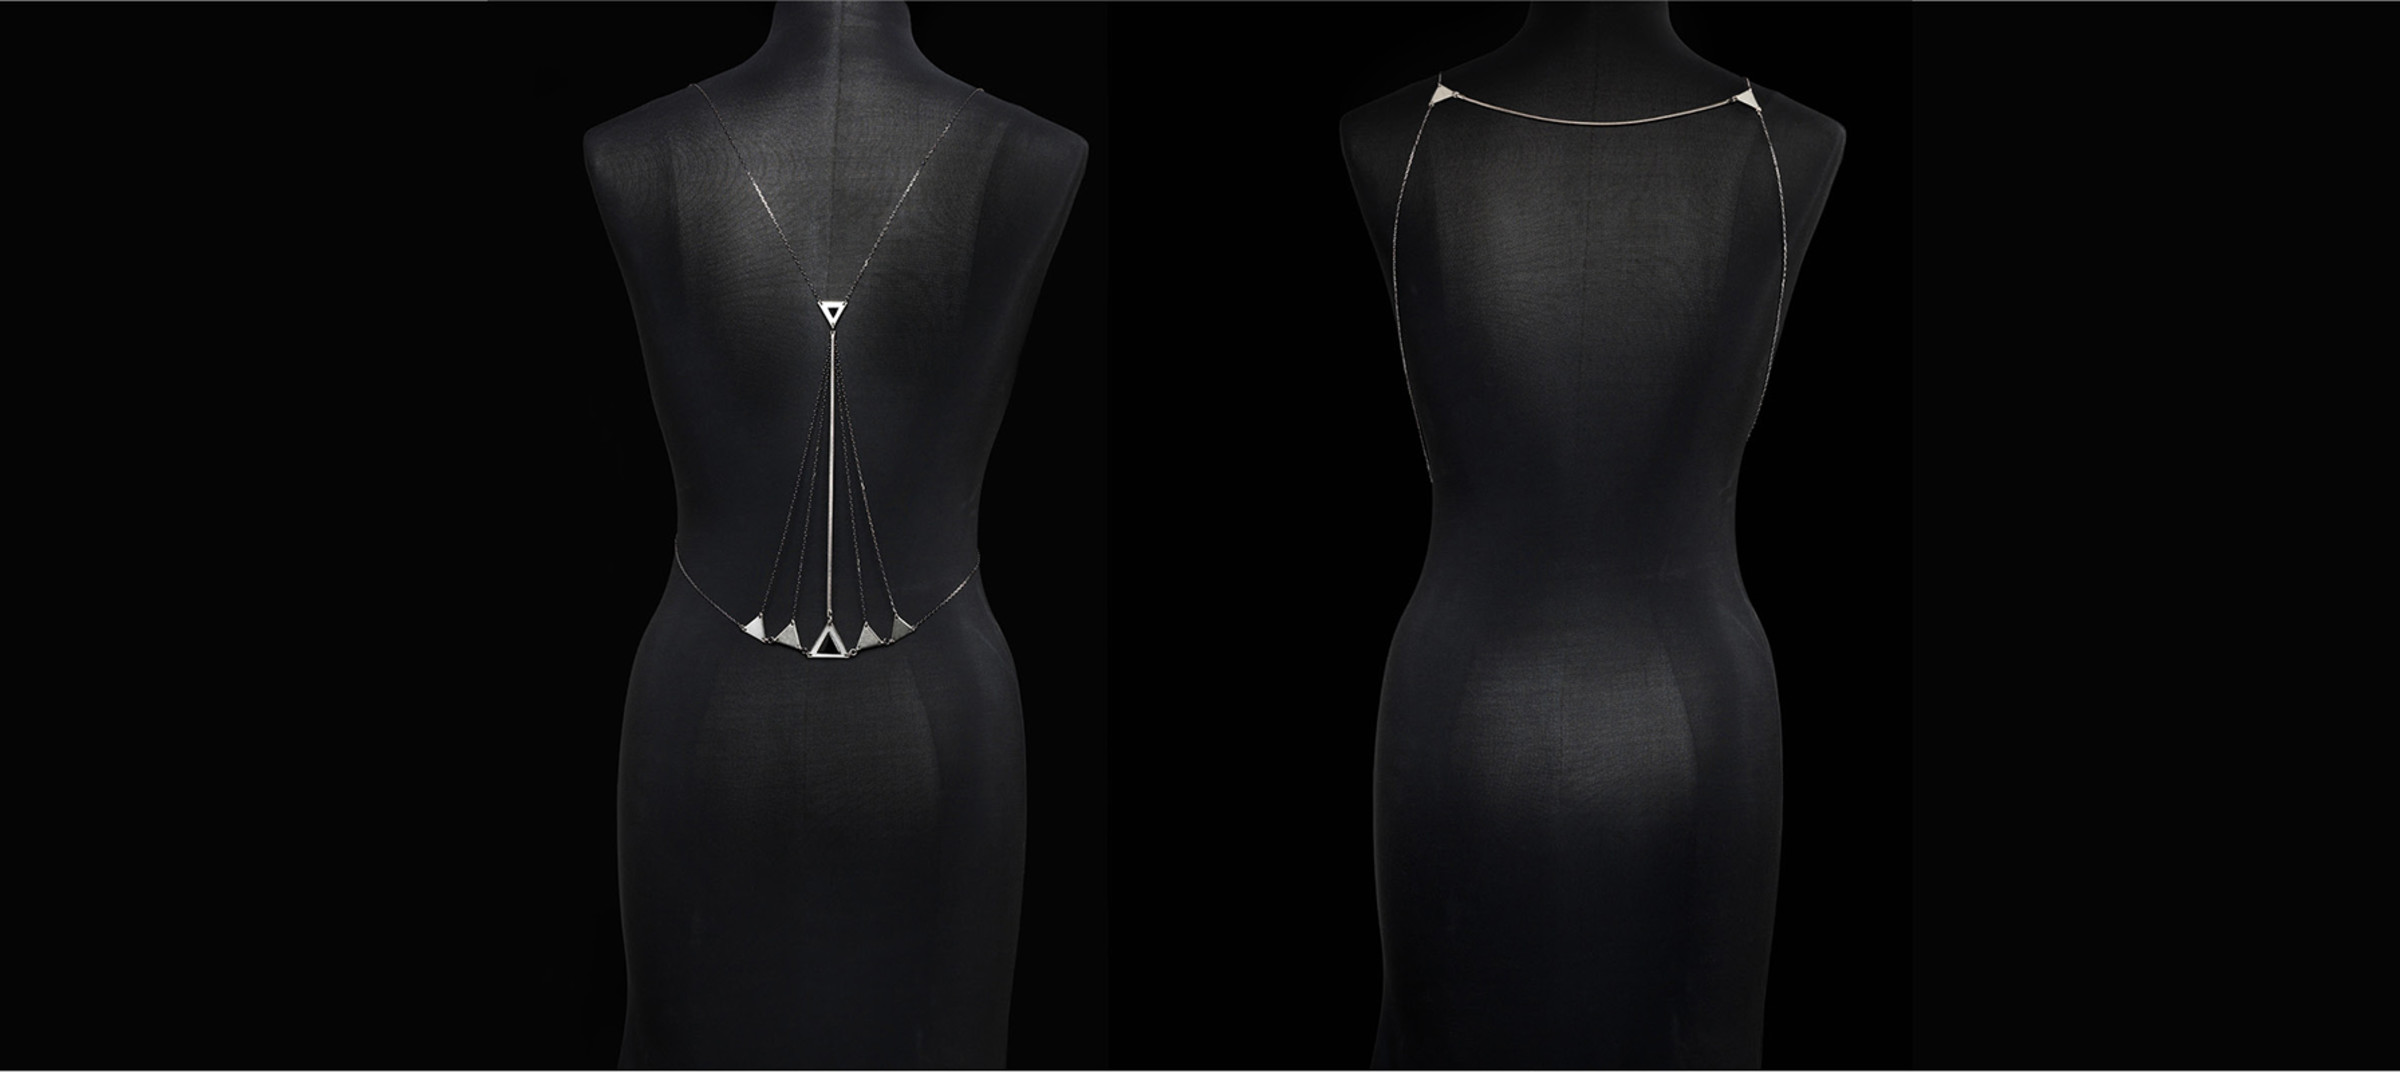 Bliss Lau's limited edition jewelry piece, Ray of Moon, on mannequin shot by DTE Studio.